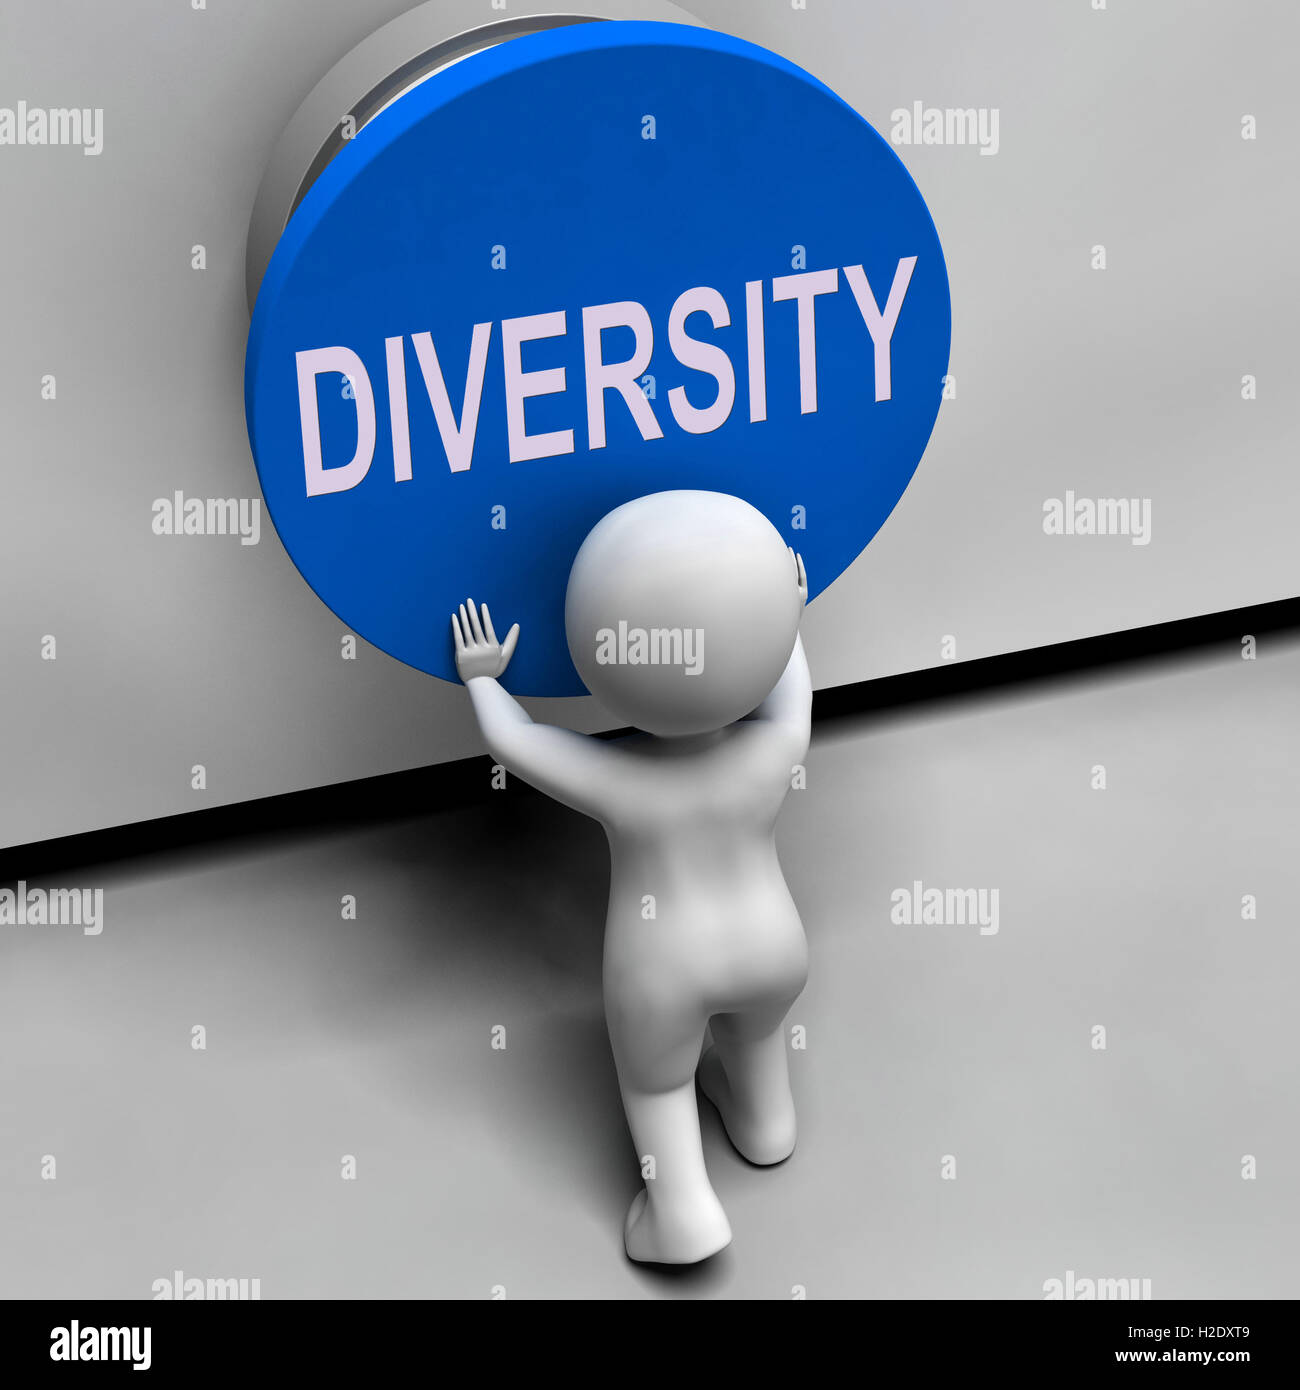 Diversity Button Means Variety Difference Or Multi-Cultural - Stock Image